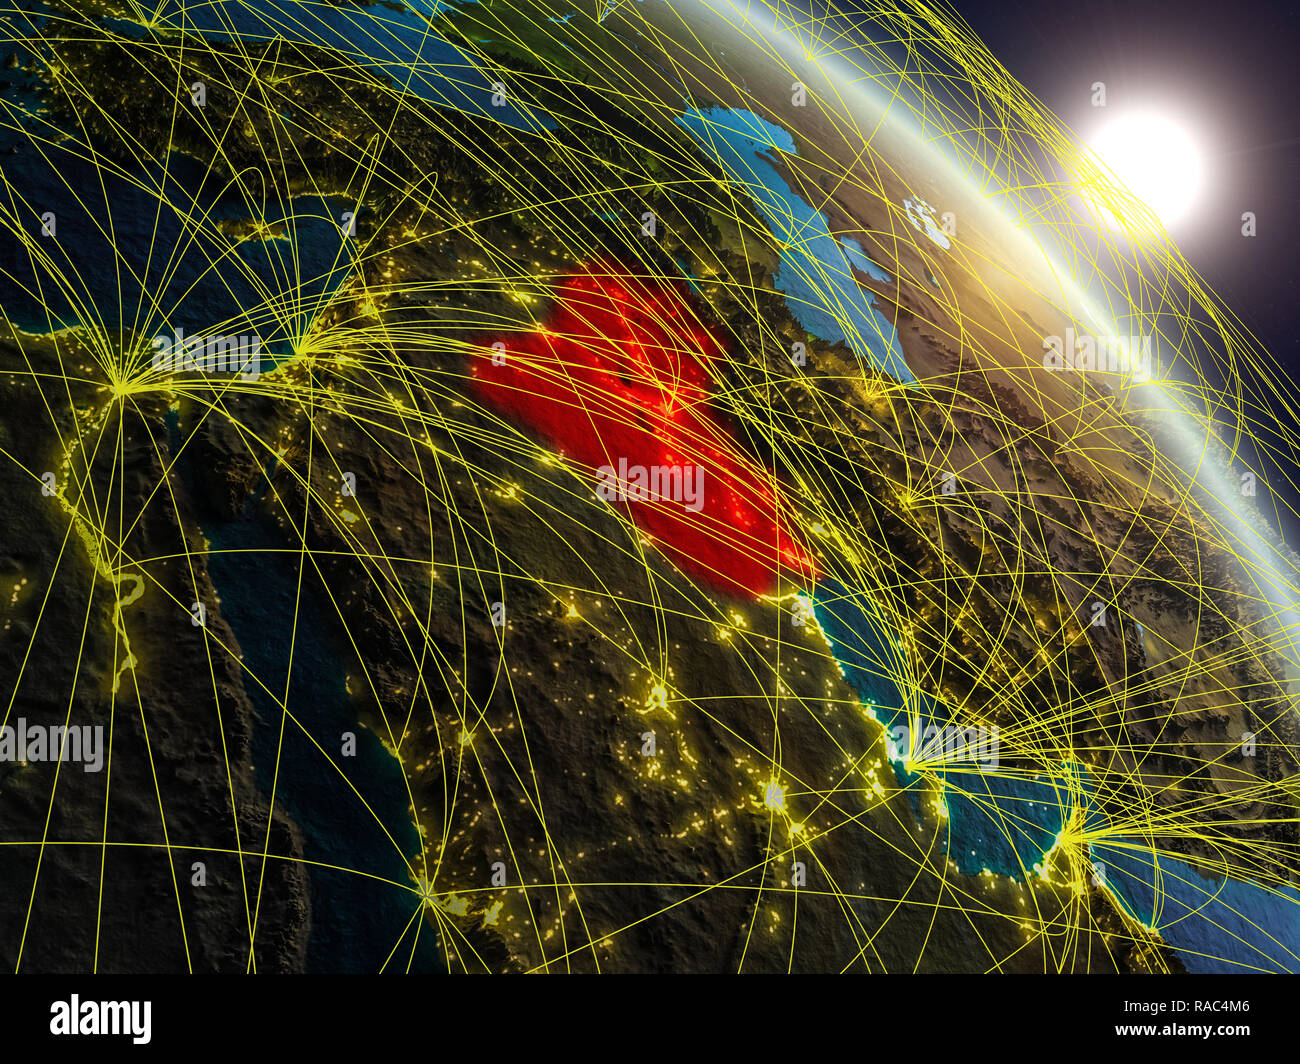 8fb602e4a2 Iraq from space on realistic model of planet Earth with network. Concept of  digital technology